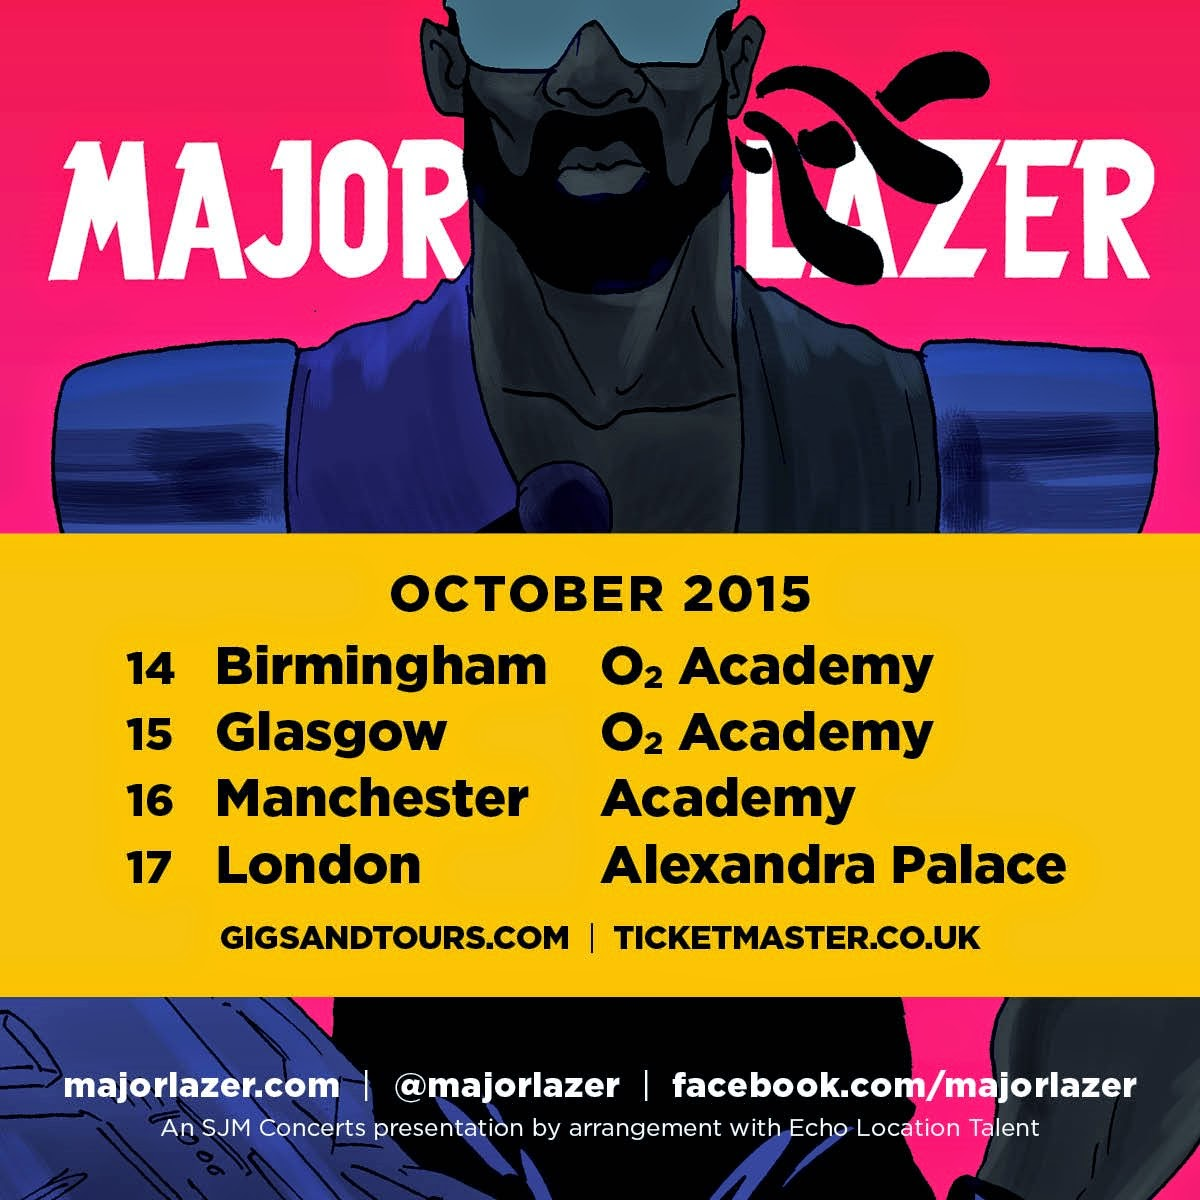 Major Lazer UK tour dates for 2015